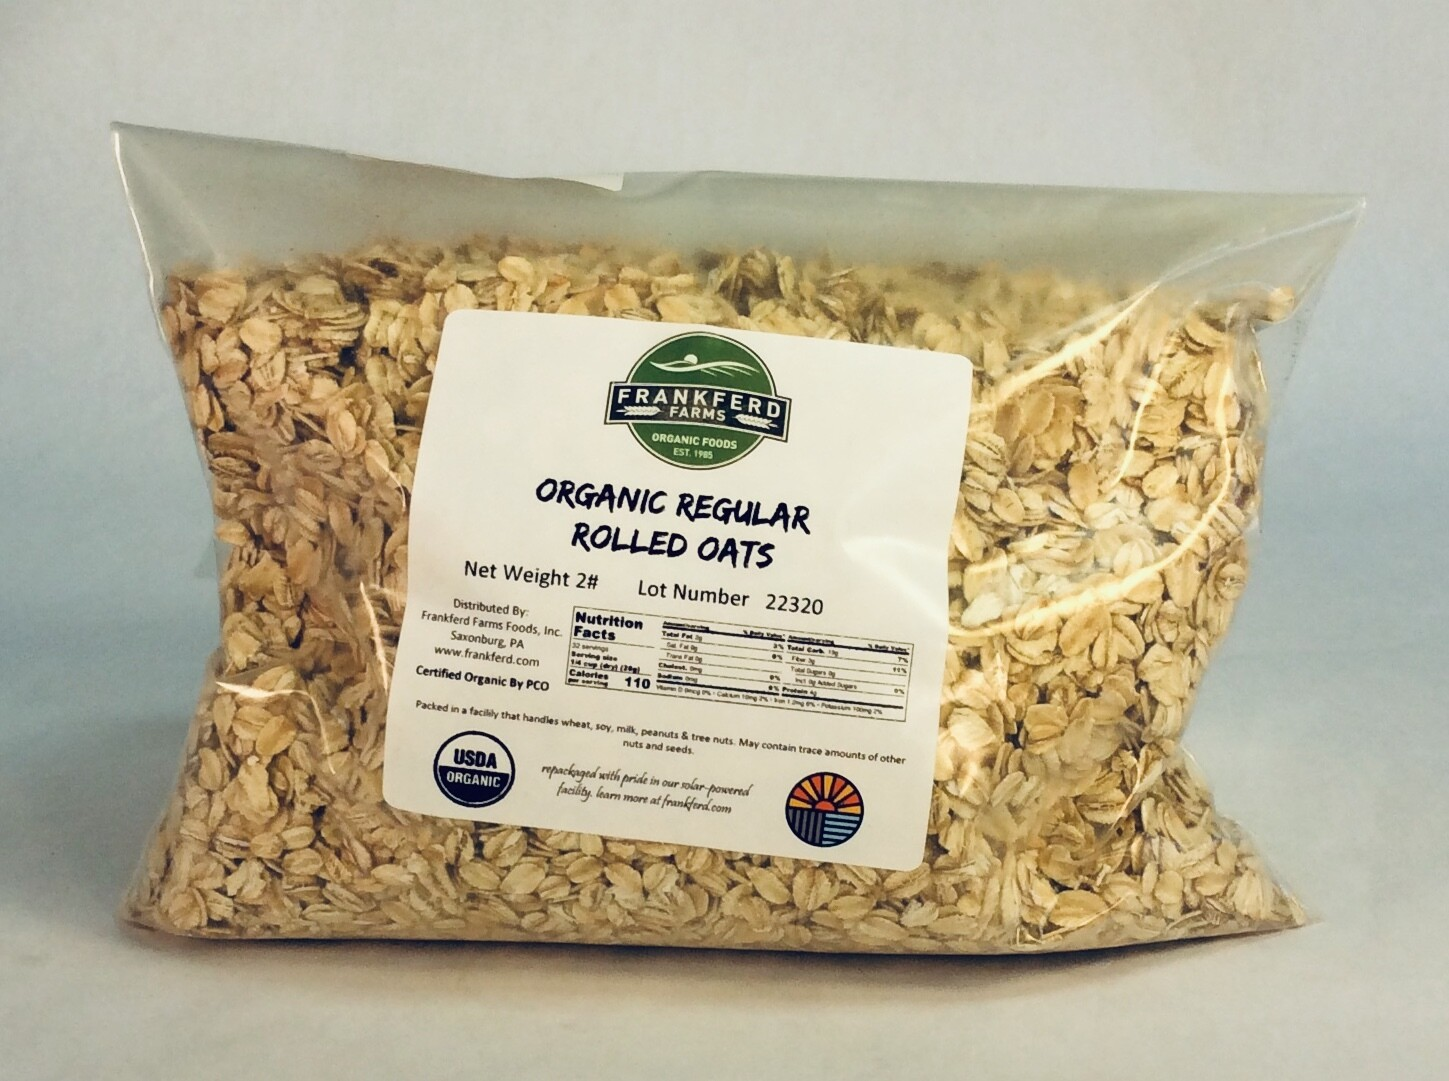 oats, rolled, organic; 2 pounds; Frankferd Farms